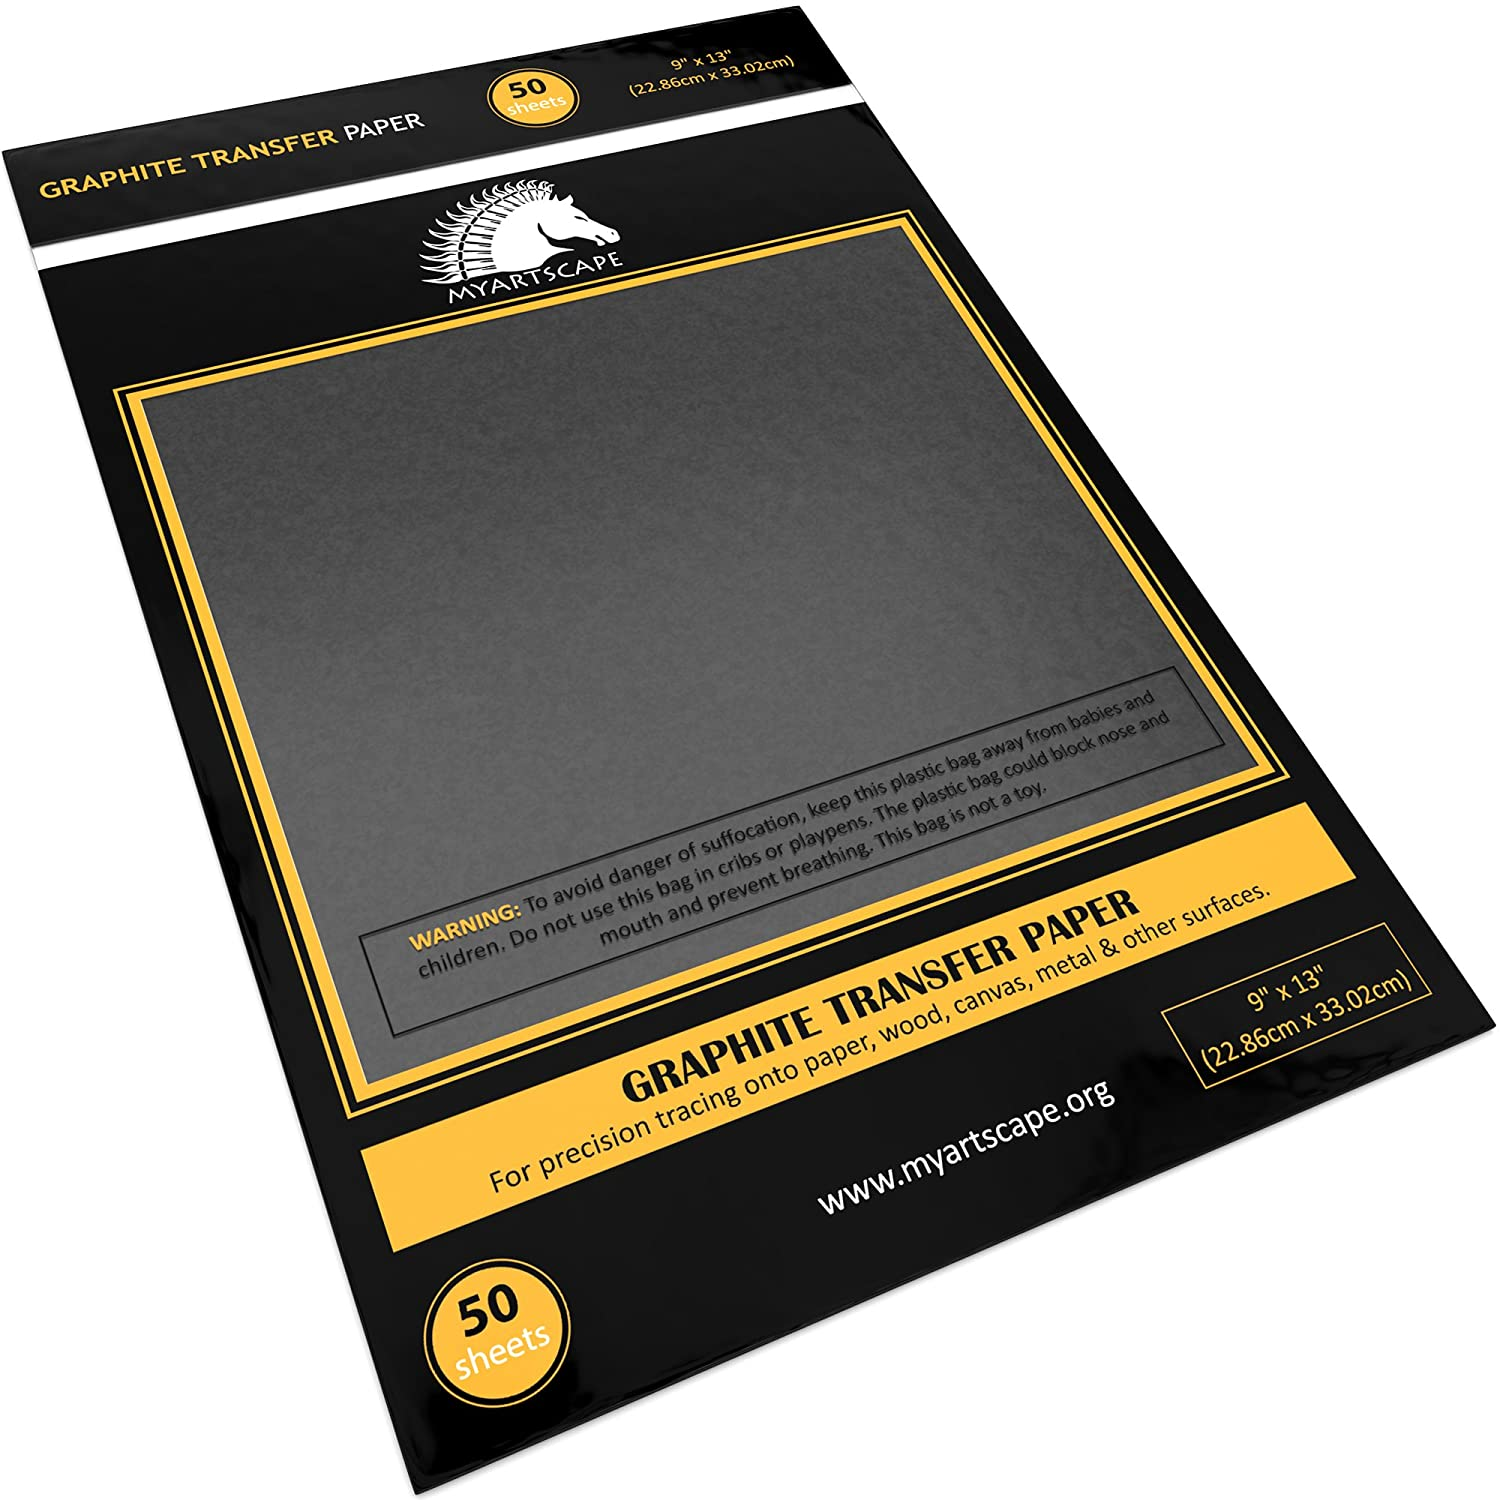 Graphite Transfer Paper - 9 x 13 - 50 Sheets - Waxed Carbon Paper for Tracing - MyArtscape (Black)